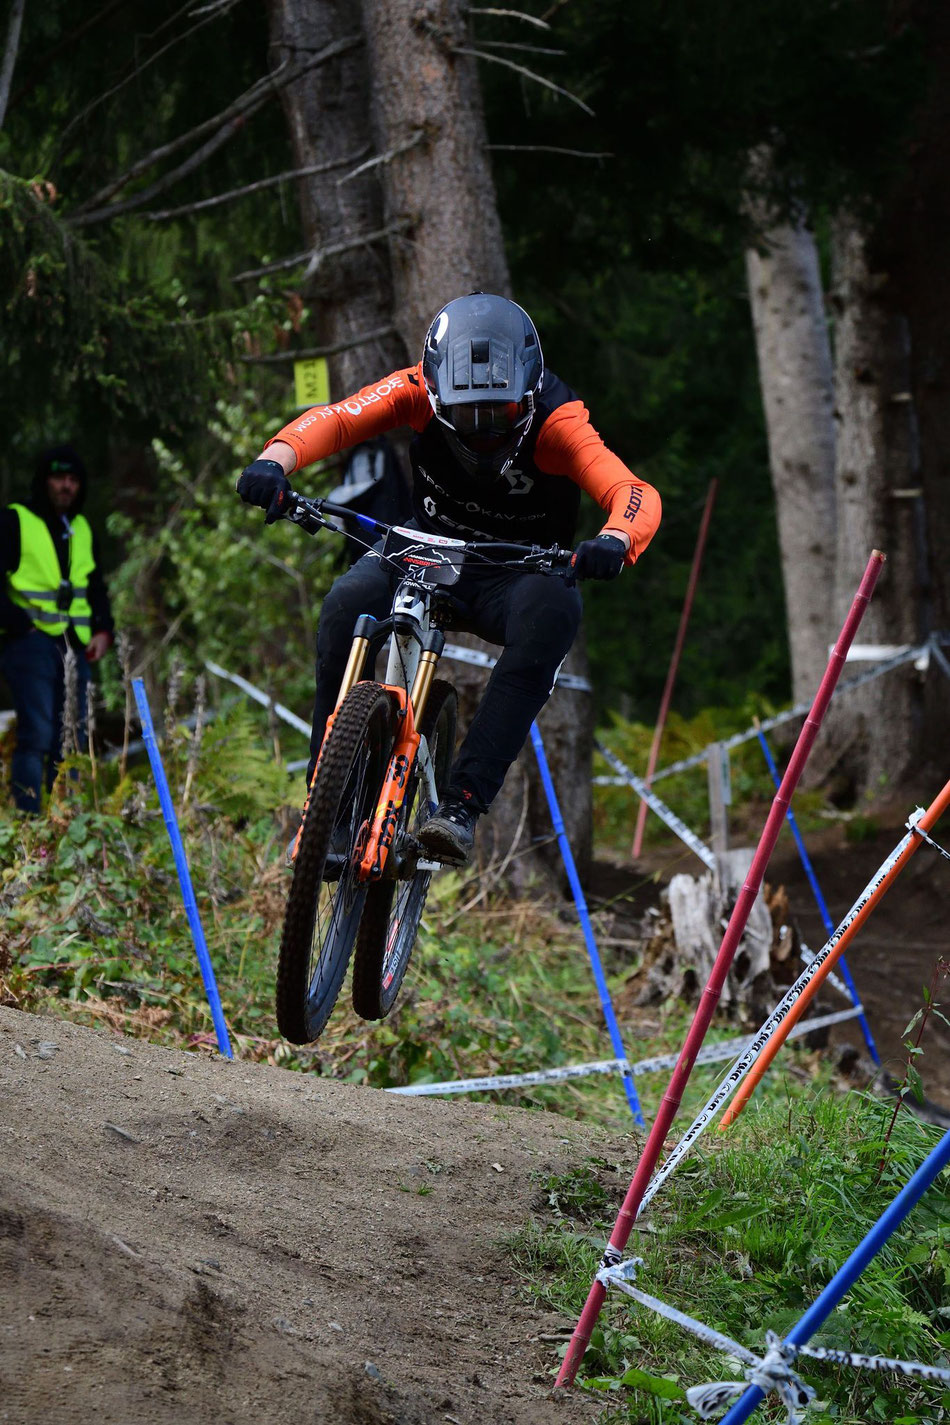 Dario finished 64th place racing on his Scott Ransom 900 Tuned Enduro bike